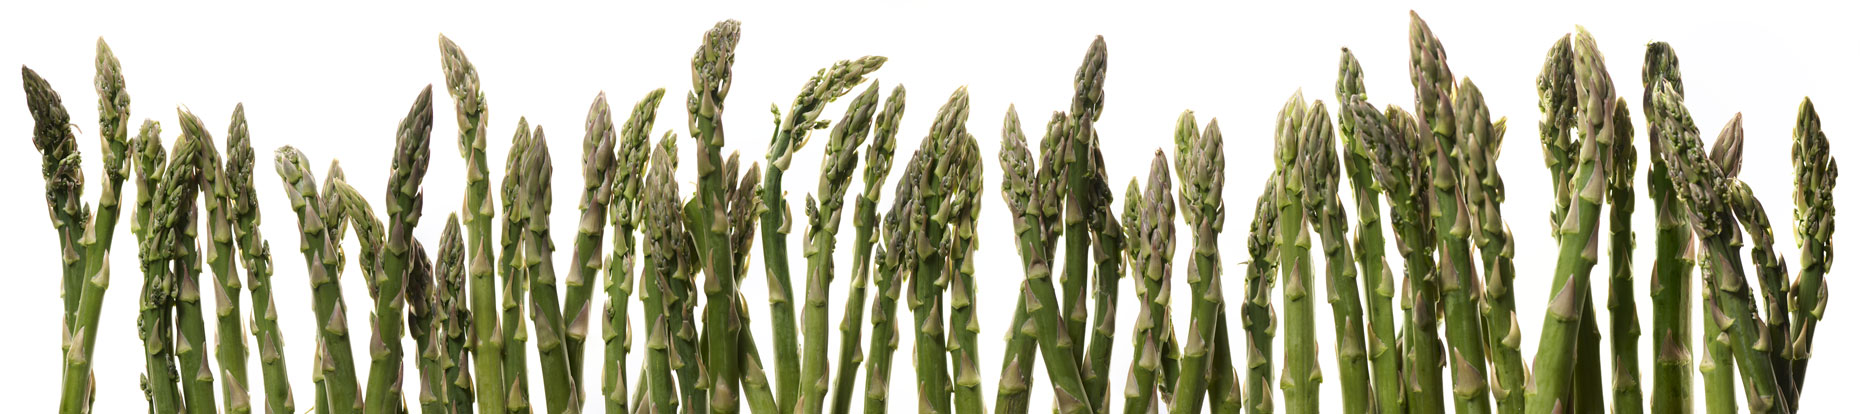 Asparagus_Panorama1-cropped-flat